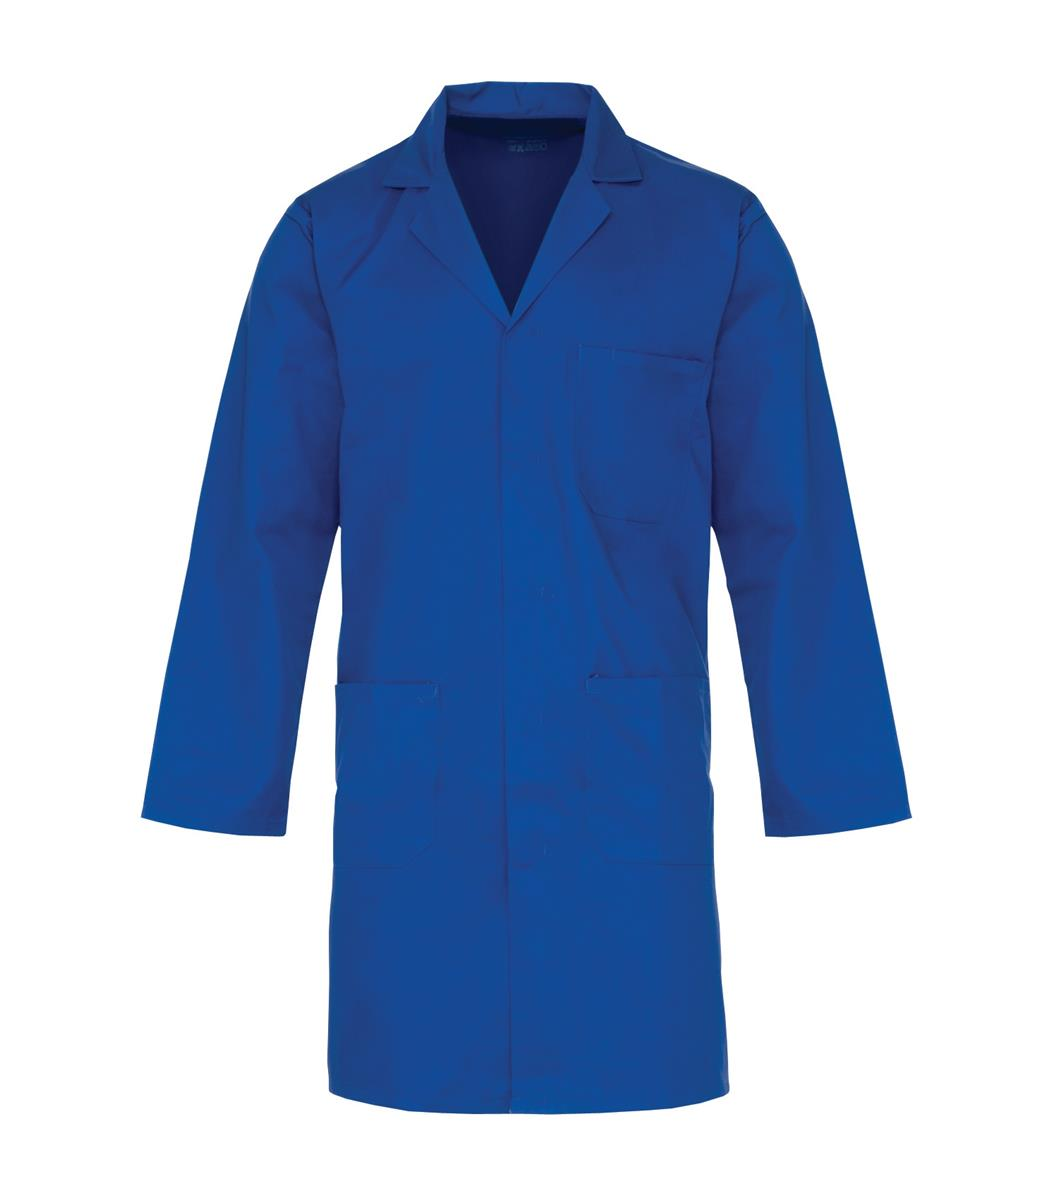 Supertouch Lab Coat Polycotton with 3 Pockets Small Navy Ref 57011 *Approx 3 Day Leadtime*